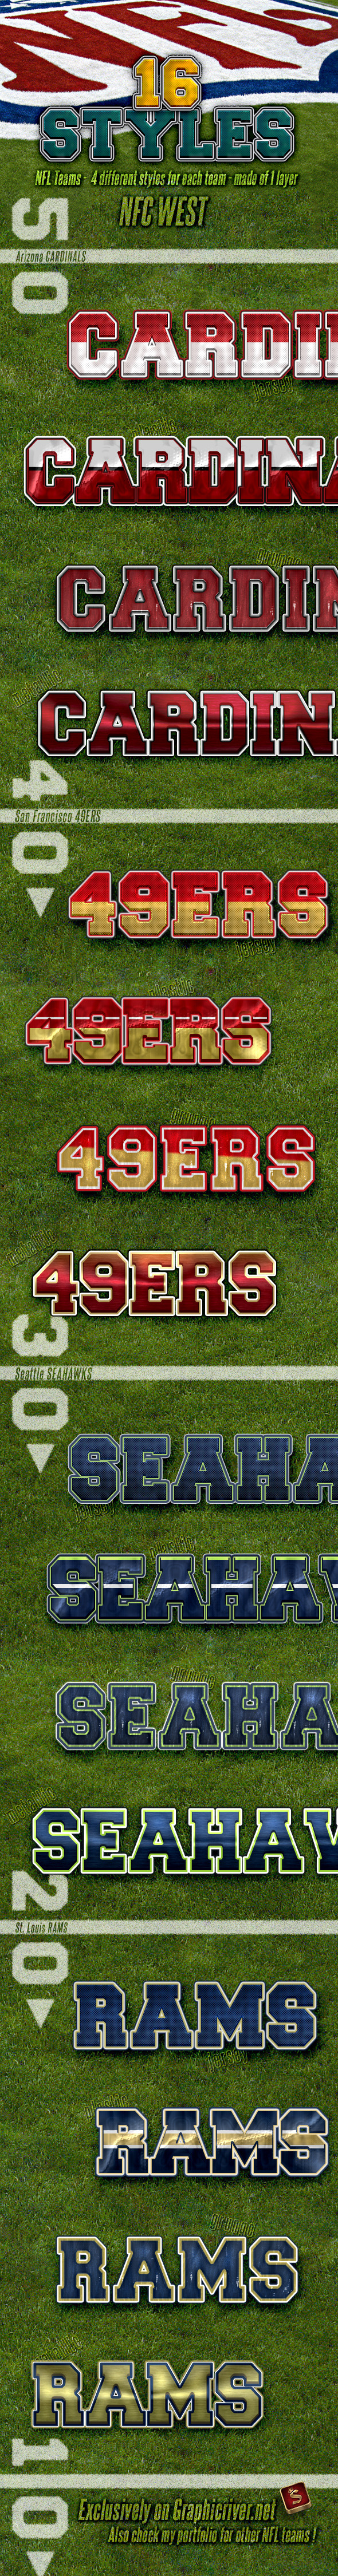 NFL Football Styles - NFC West - Styles Photoshop